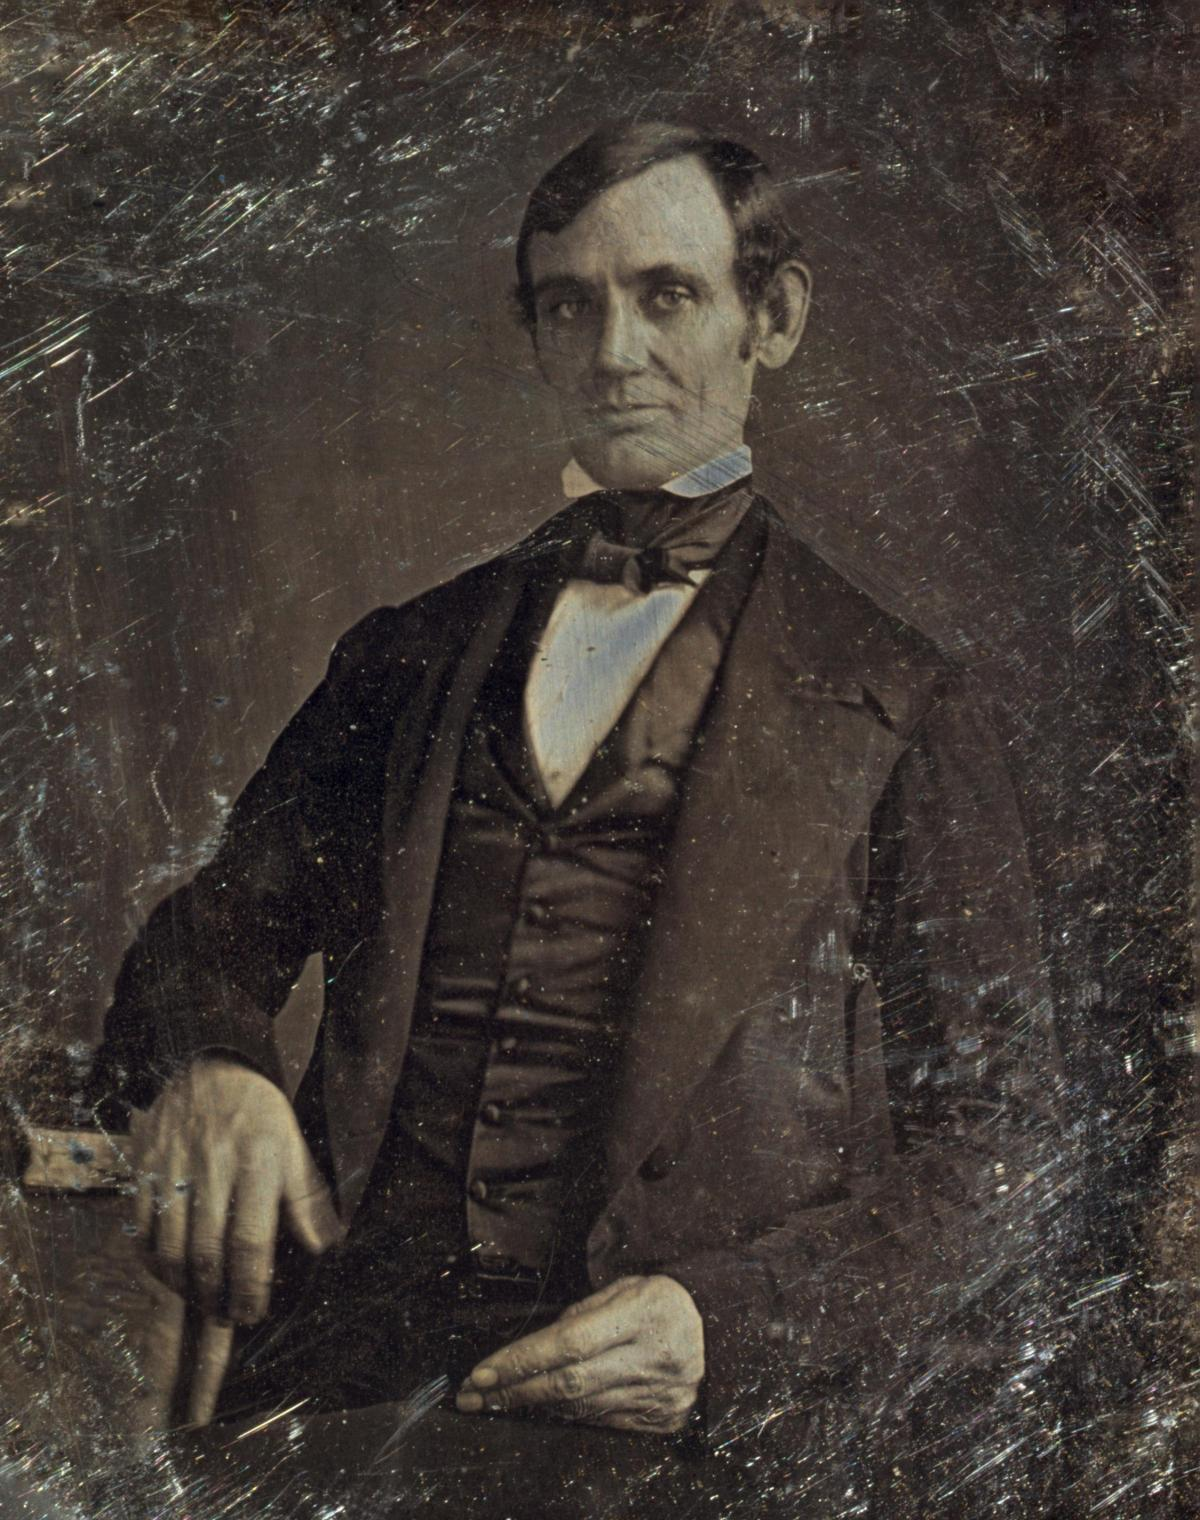 """Died of the Spotted Fever"": The Spot Resolutions and the Making of Abraham Lincoln"